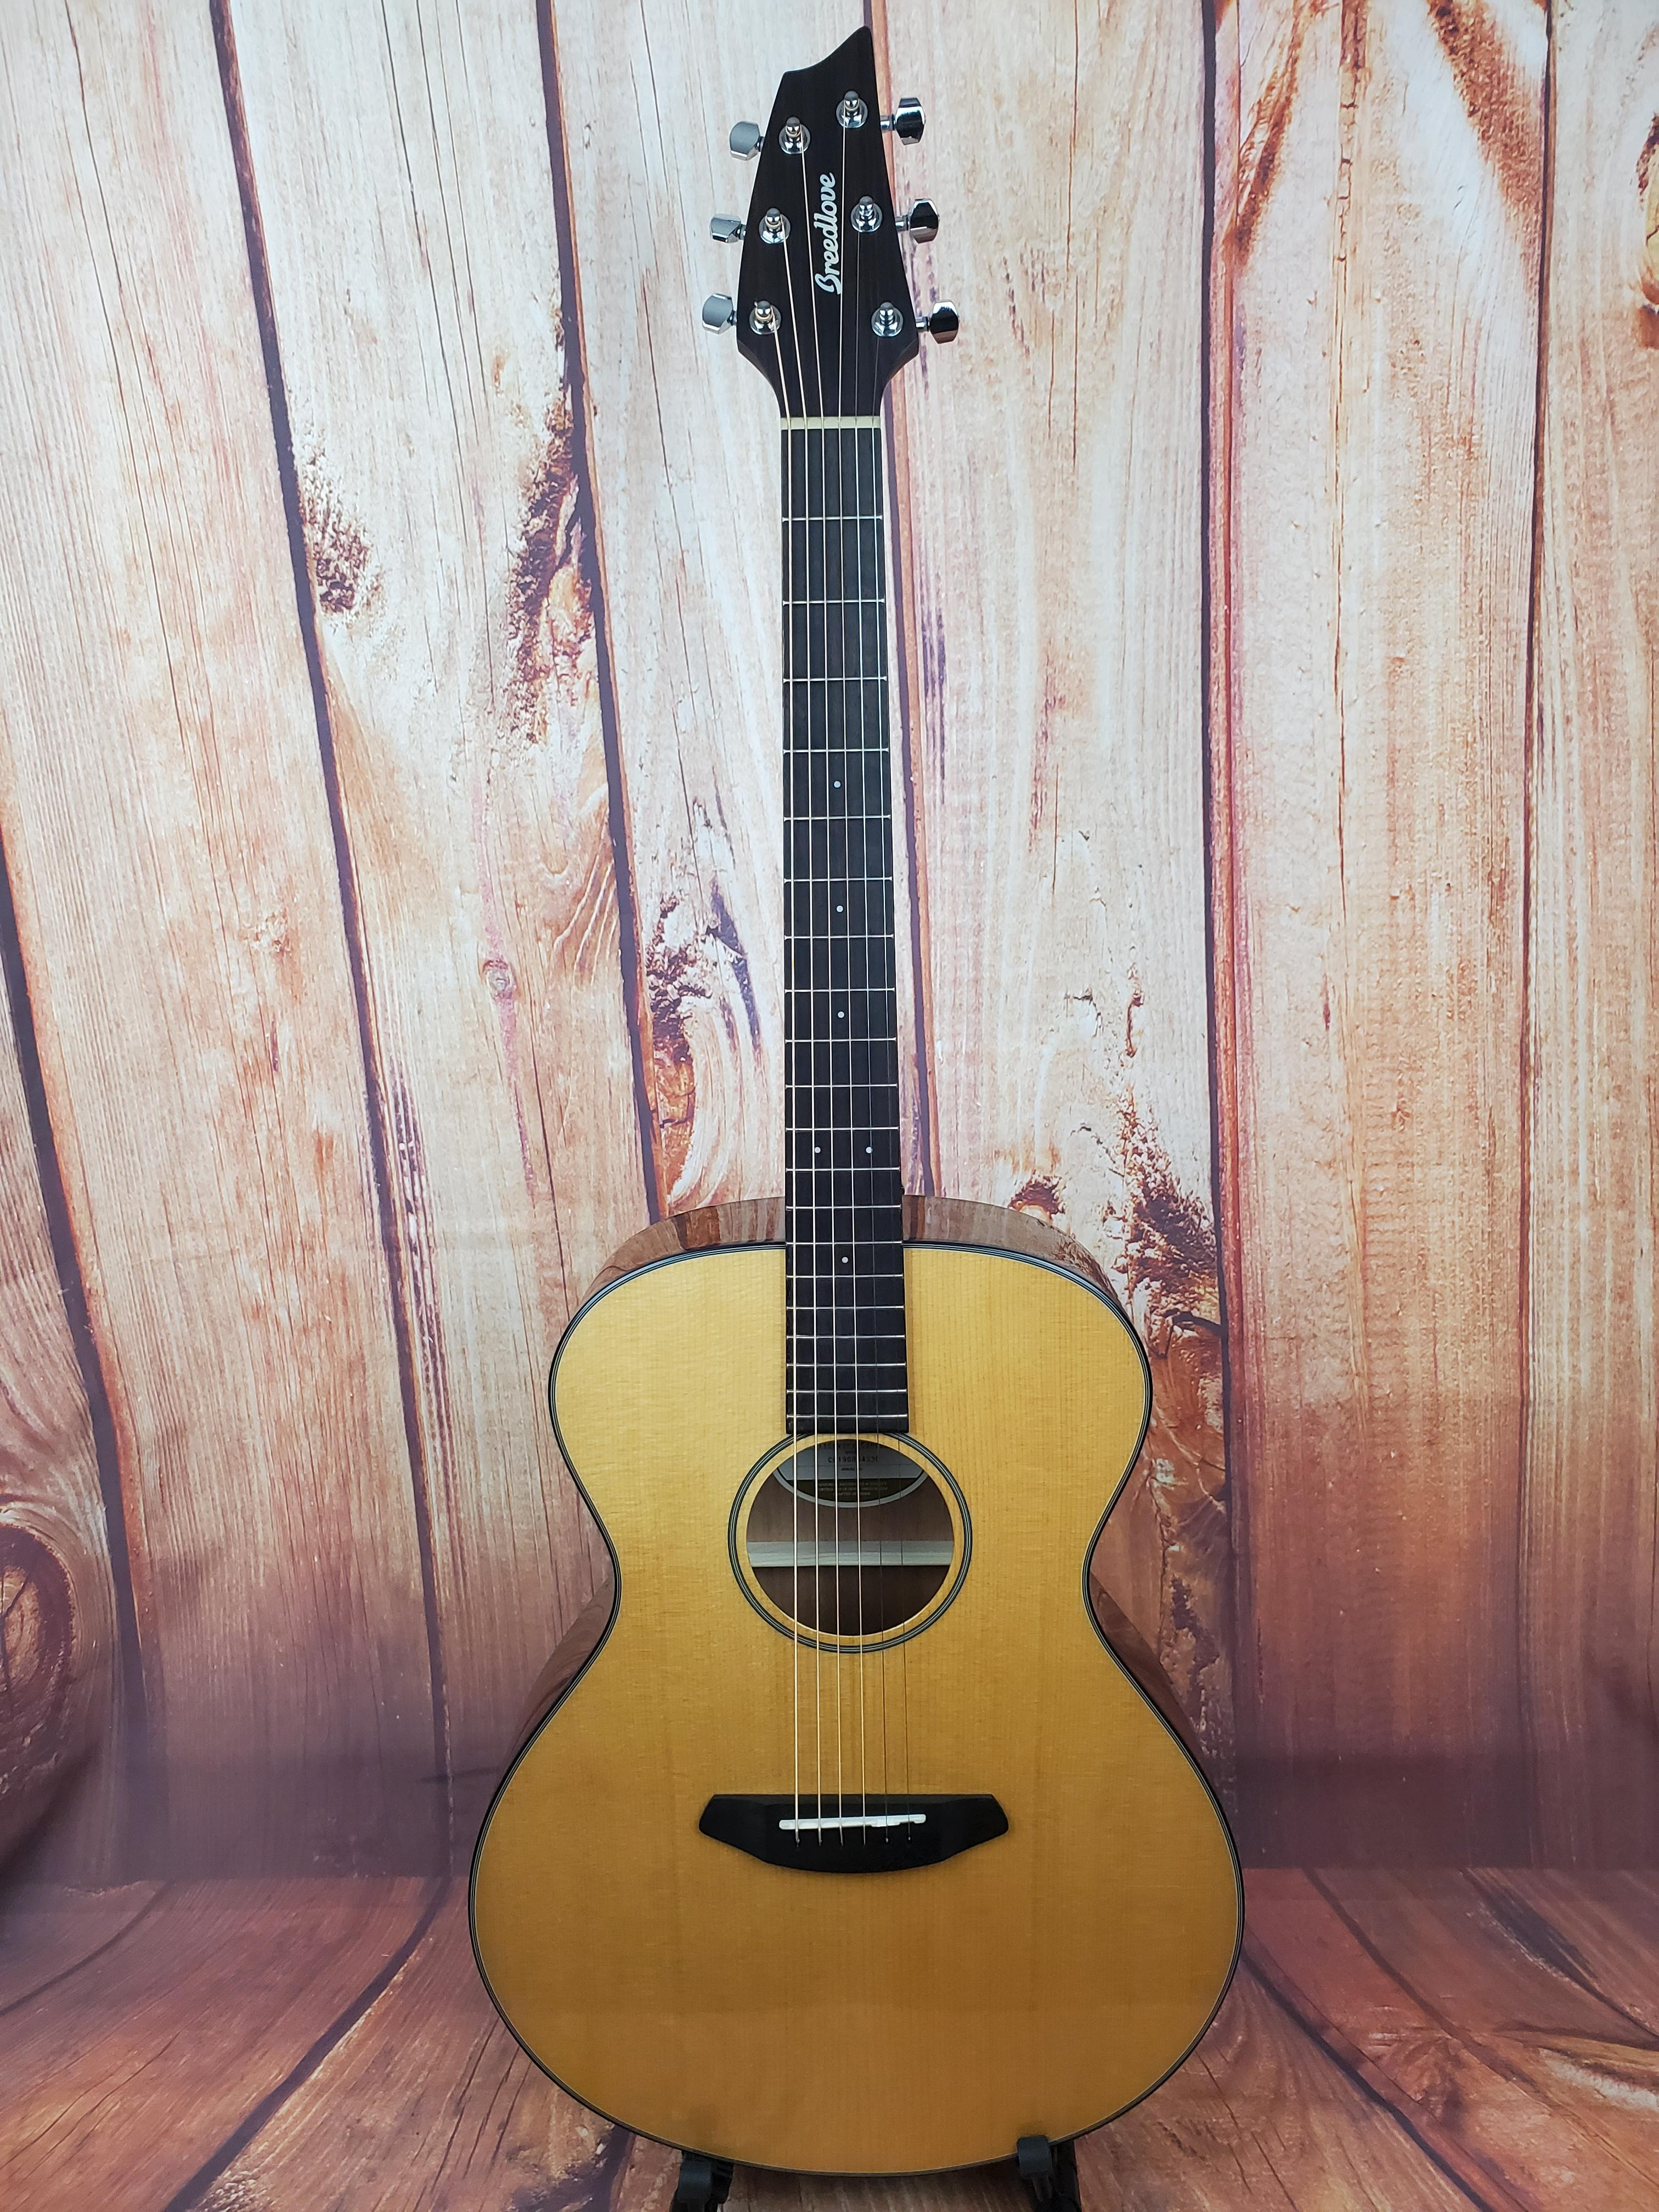 Used- Breedlove Discovery Concert Acoustic Guitar